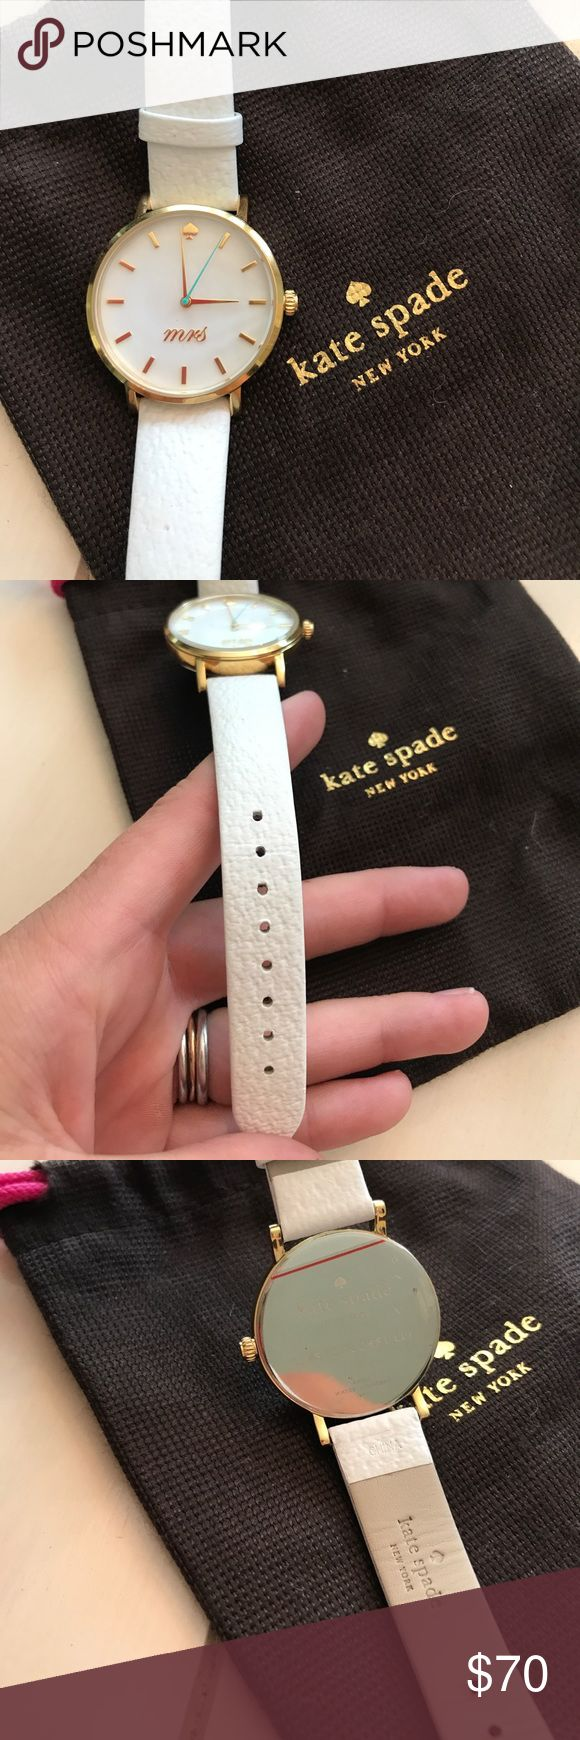 NWOT Kate Spade Mrs. Watch NWOT Kate Spade Mrs. Watch. NEEDS BATTERY! Never worn never used it's so cute. White w gold accents, Tiffany blue second hand kate spade Accessories Watches